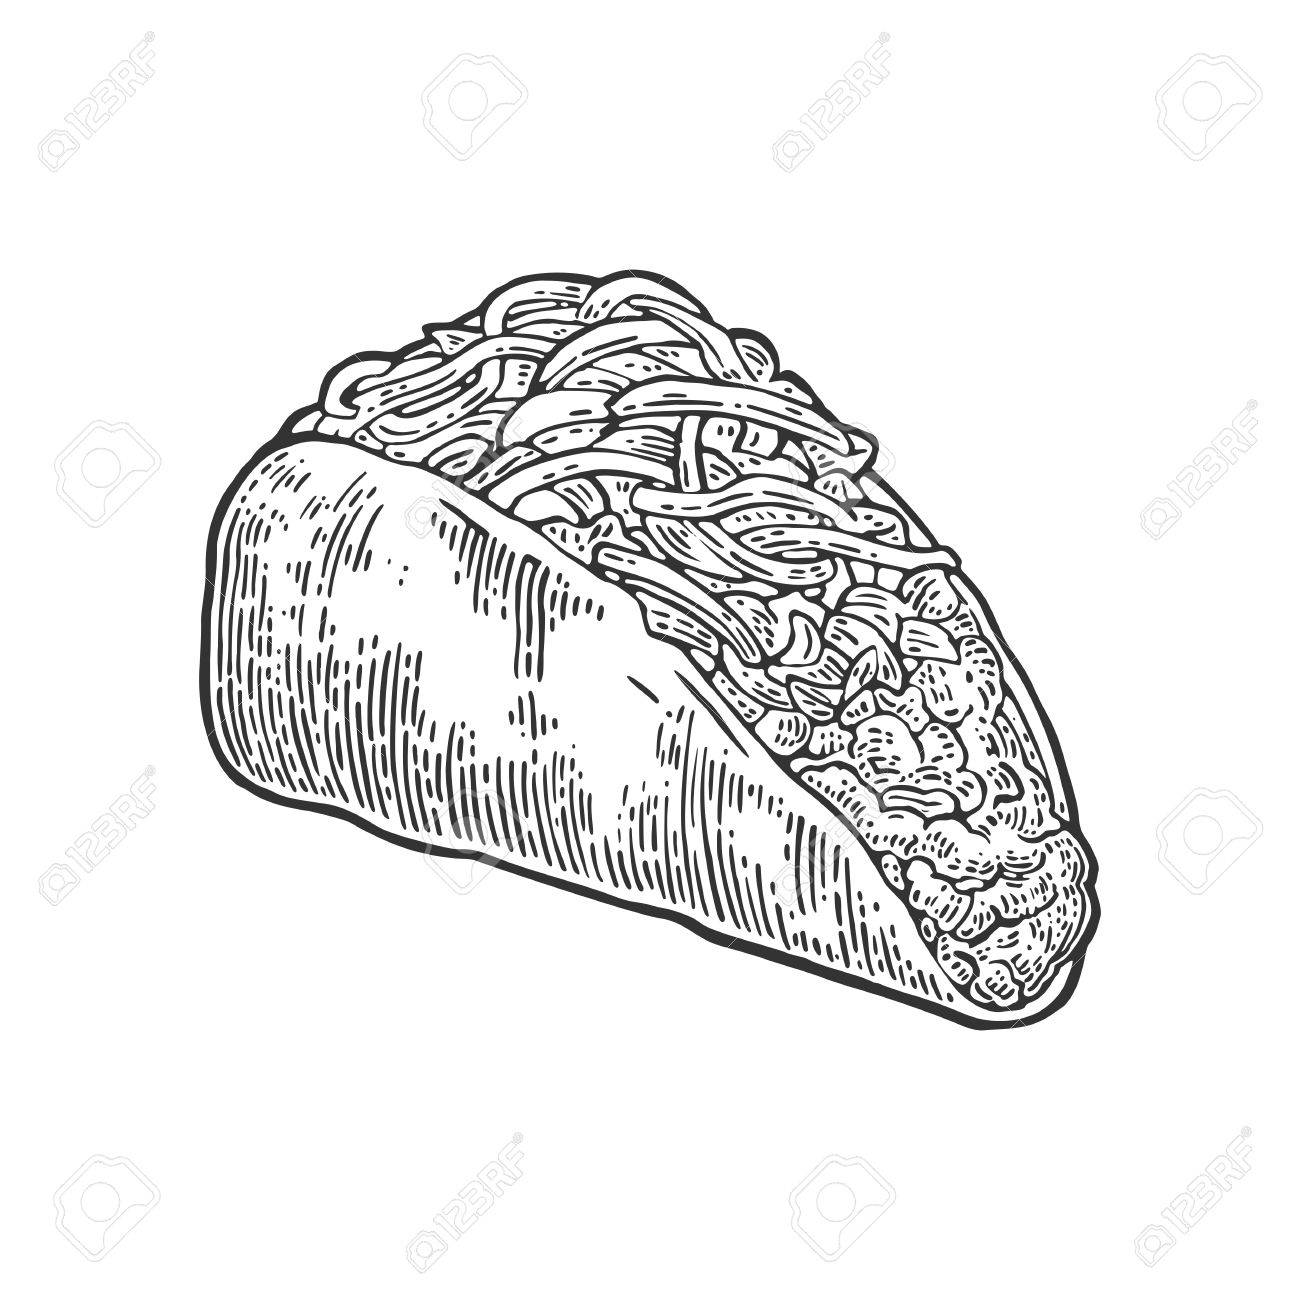 Tacos Cuisine Traditionnelle Mexicaine Vector Illustration